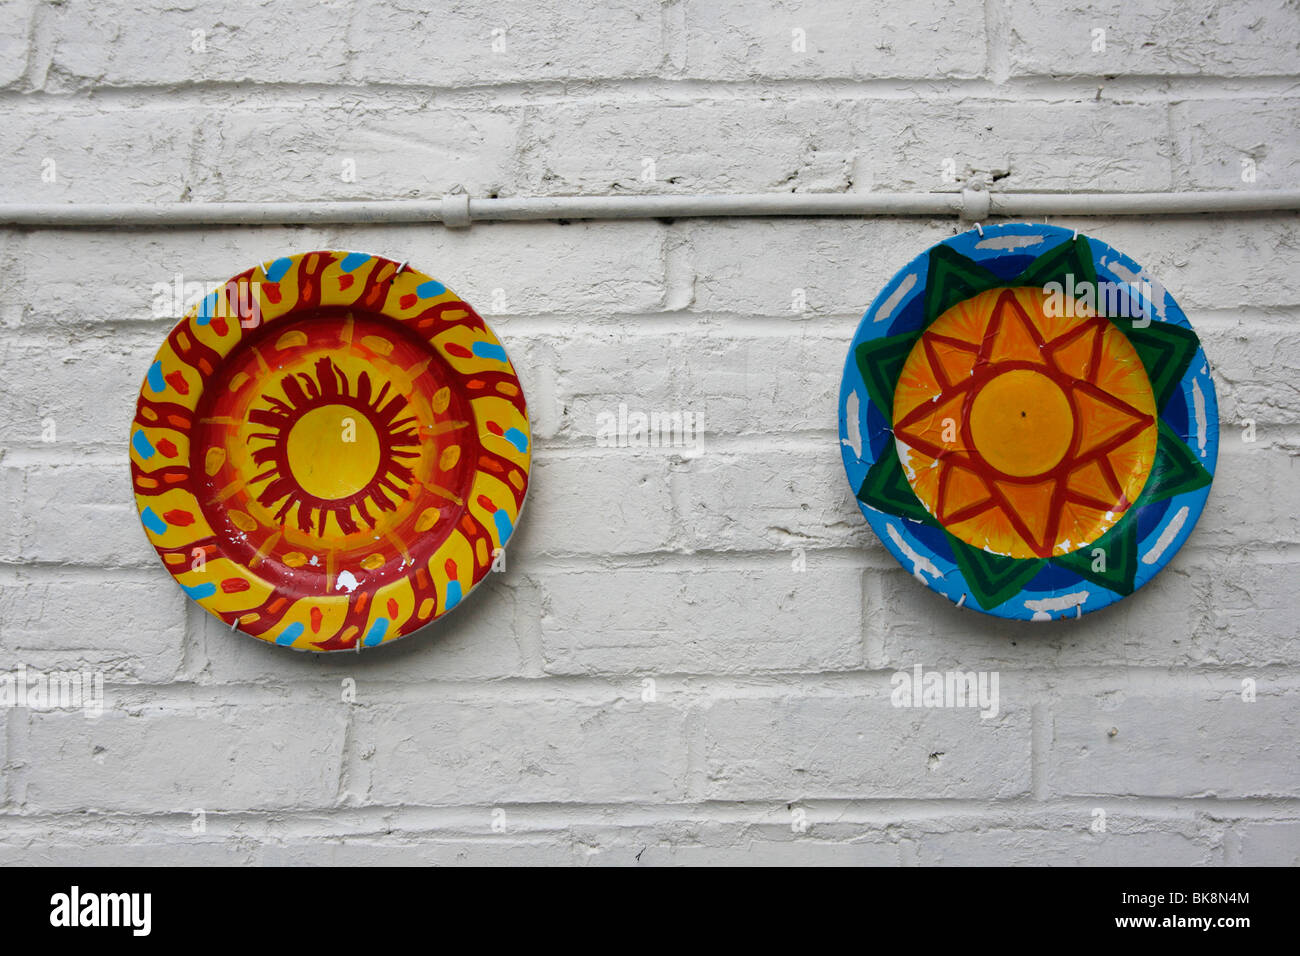 decorate plates hanging on a painted brick garden wall  sc 1 st  Alamy & decorate plates hanging on a painted brick garden wall Stock Photo ...